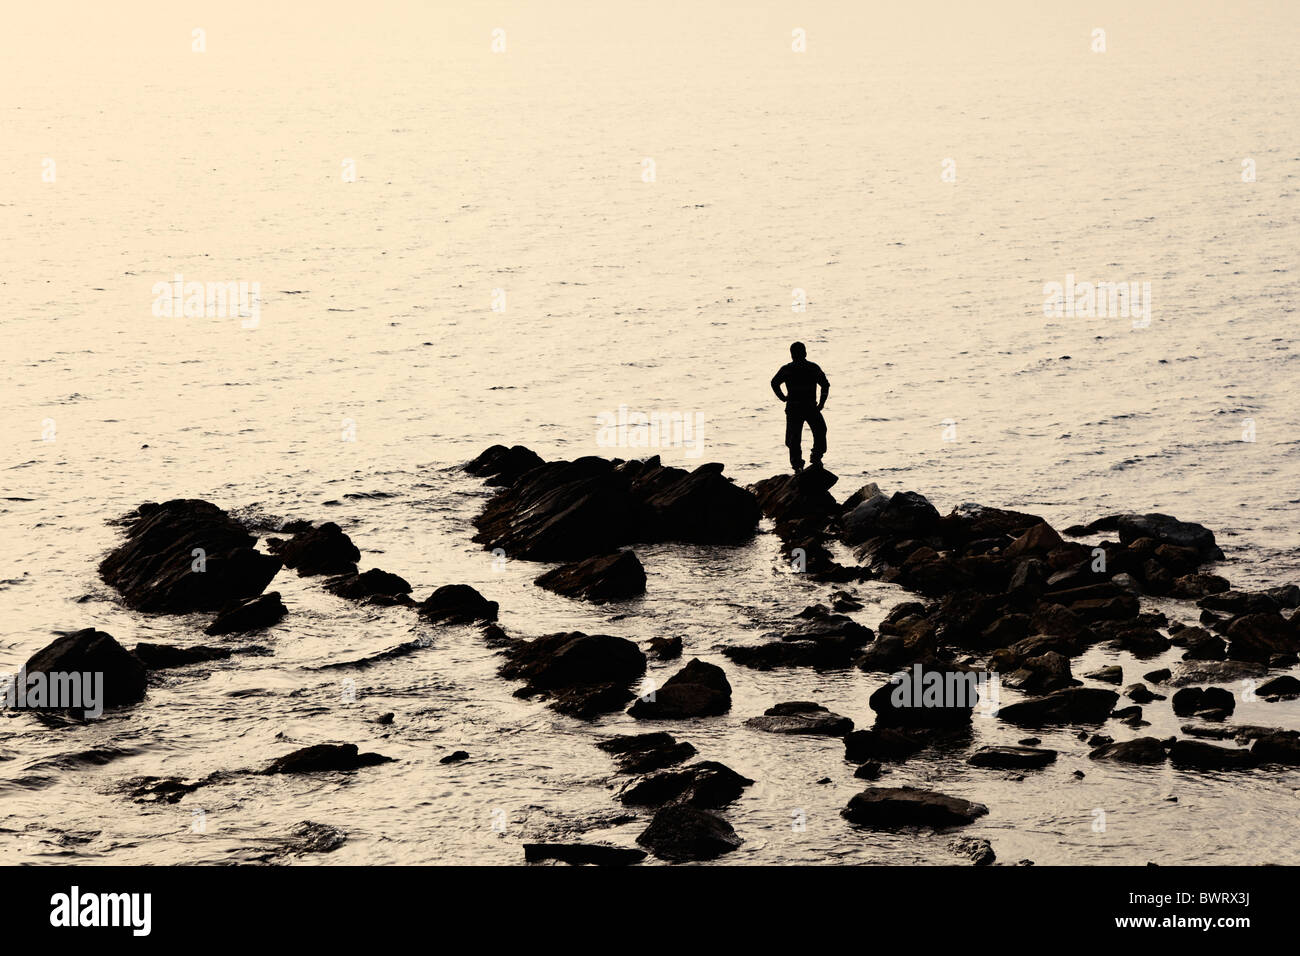 Lone figure standing on rocks looking at sea - Stock Image